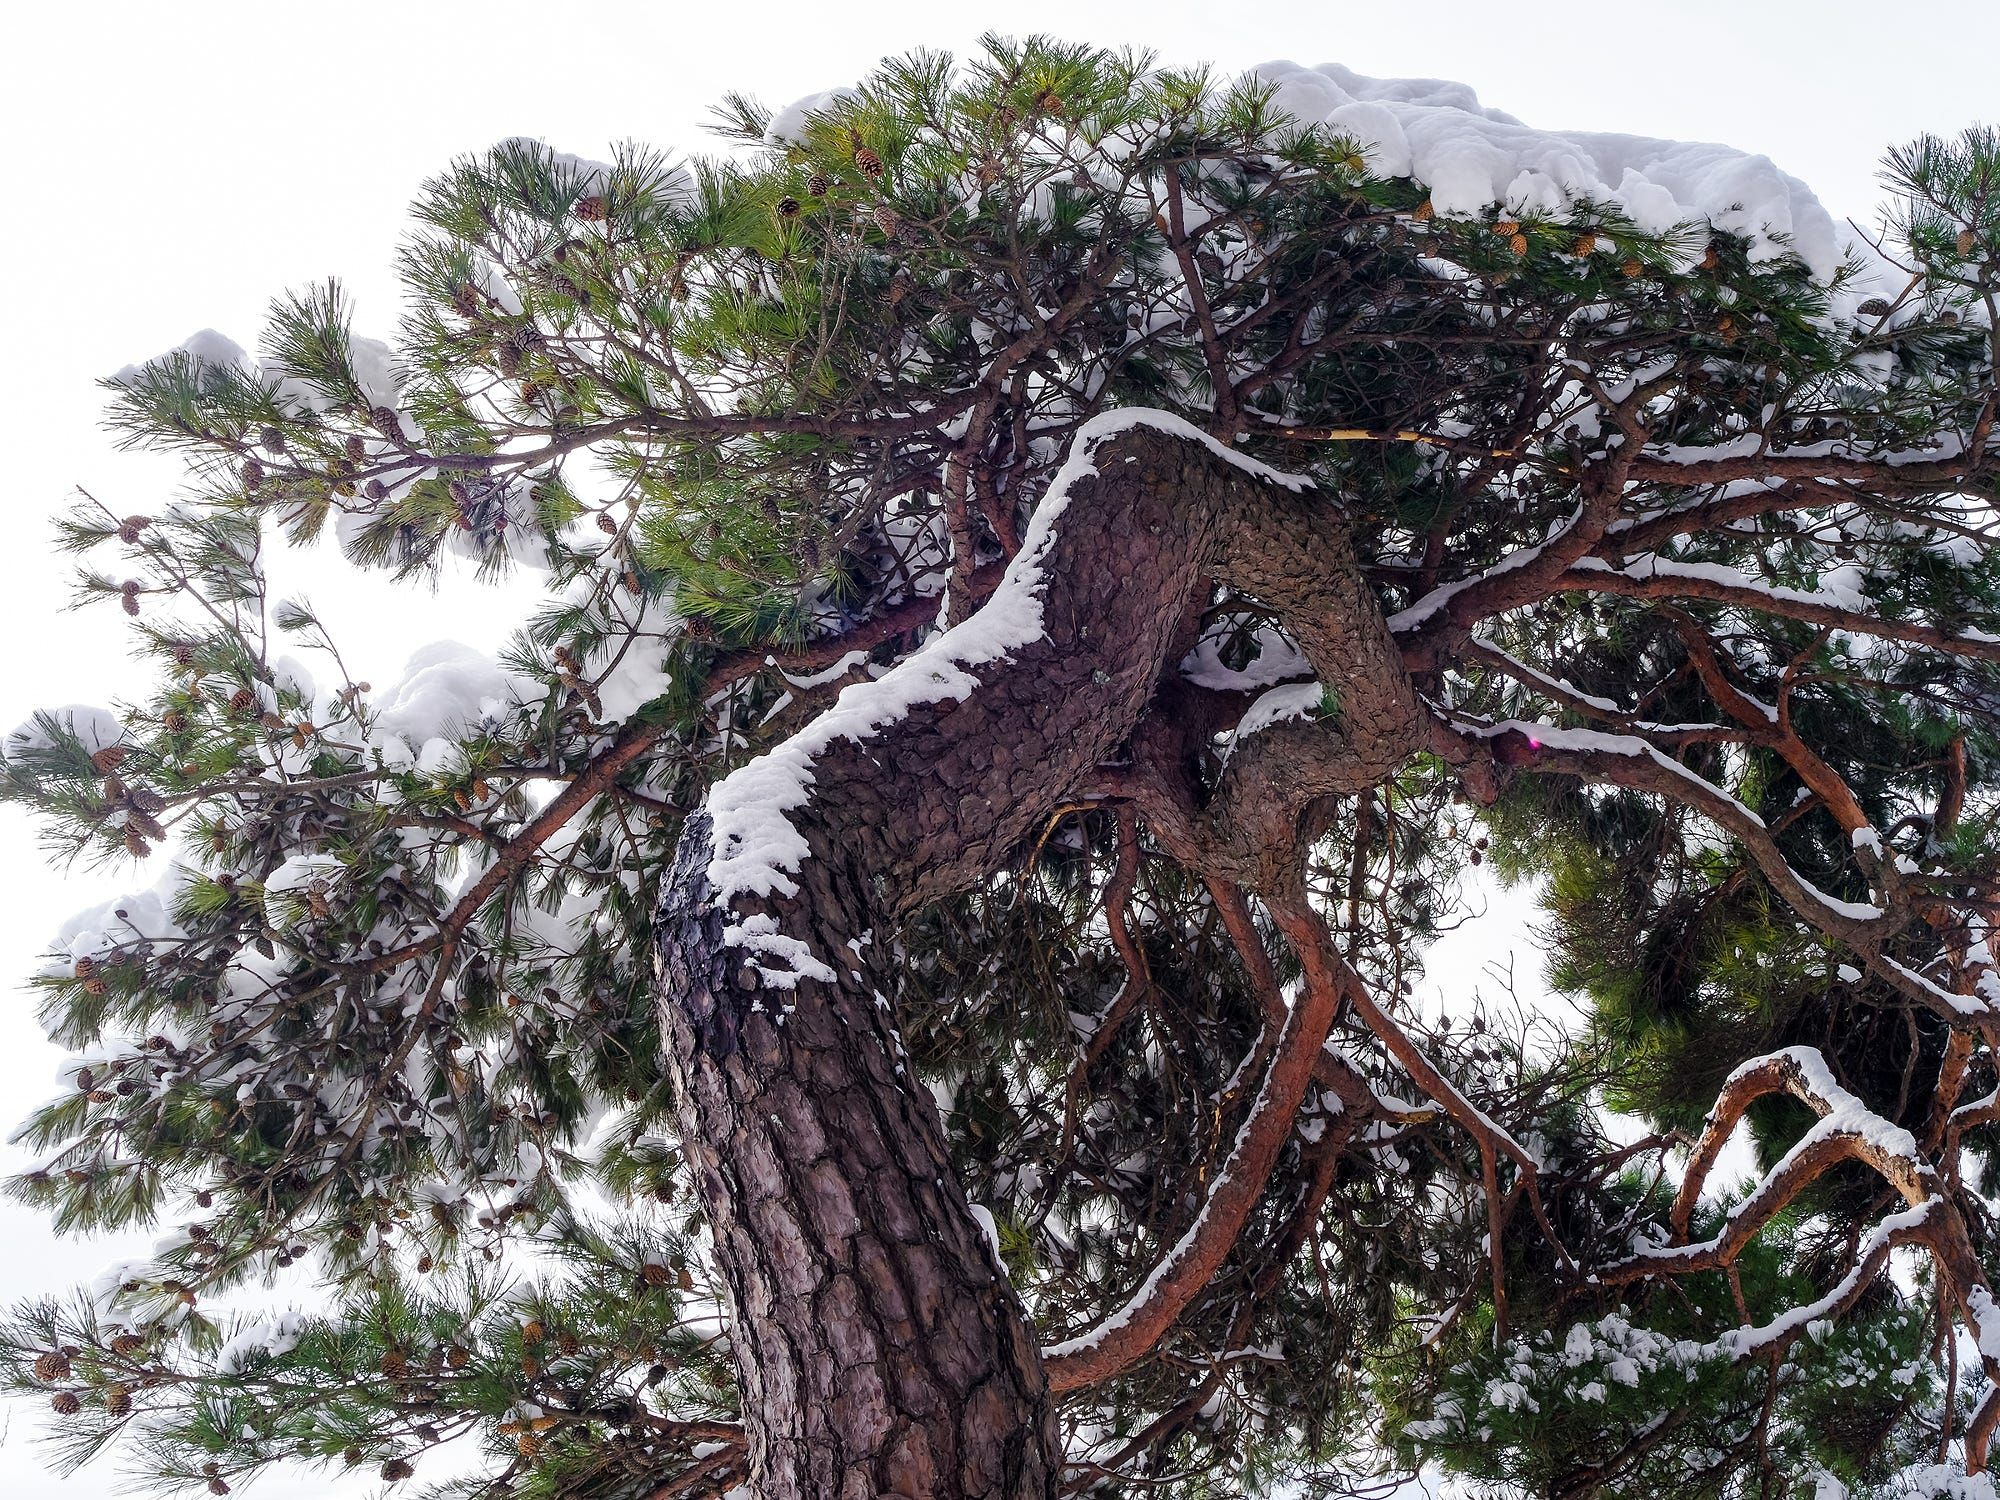 Snow on pine tree (South Korea) by Red Sun kim on 500px